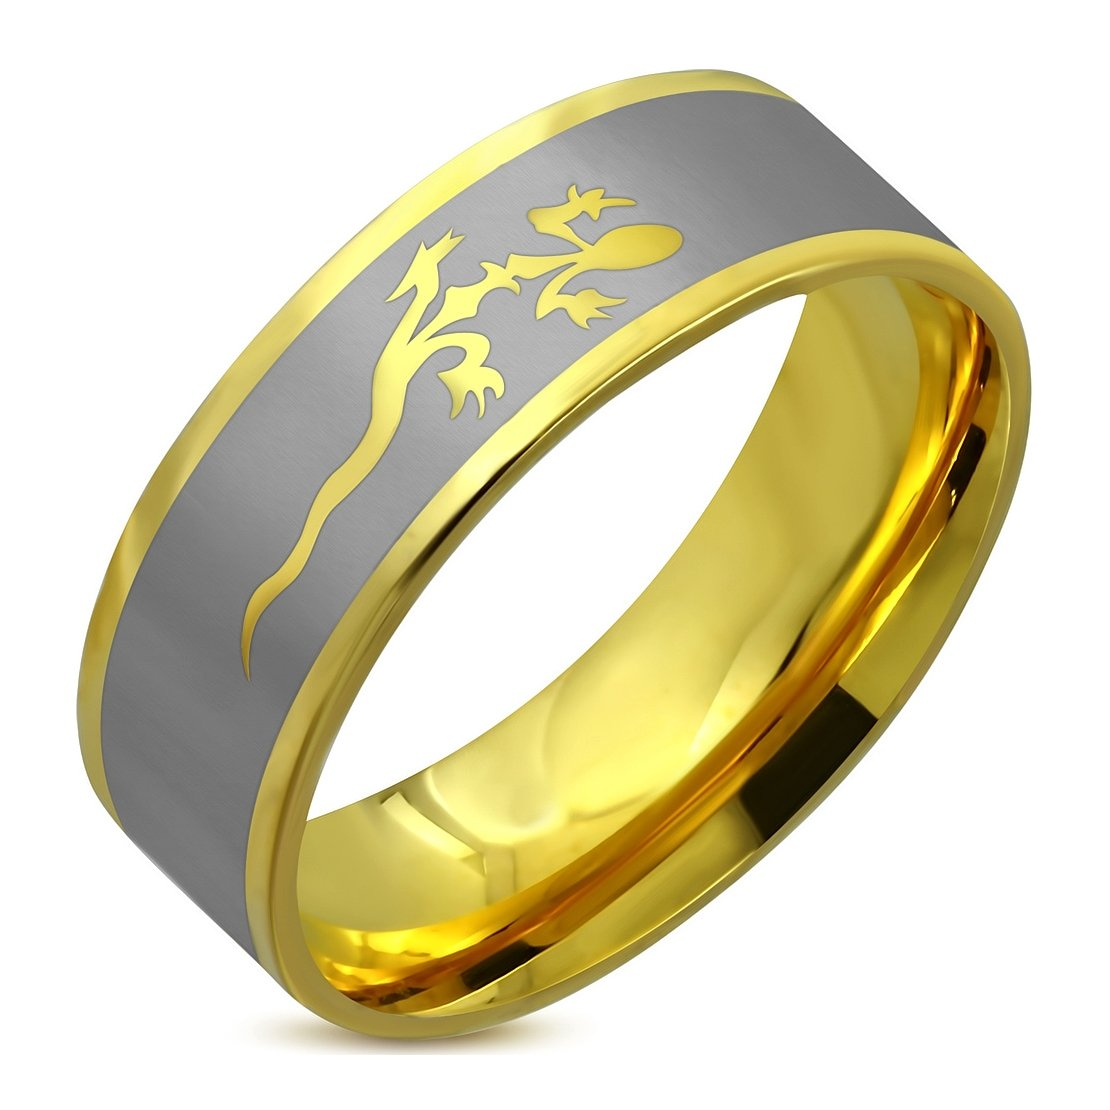 Stainless Steel Gold Color Plated 2 Color Spiral Lucky Lizard Comfort Fit Flat Band Ring